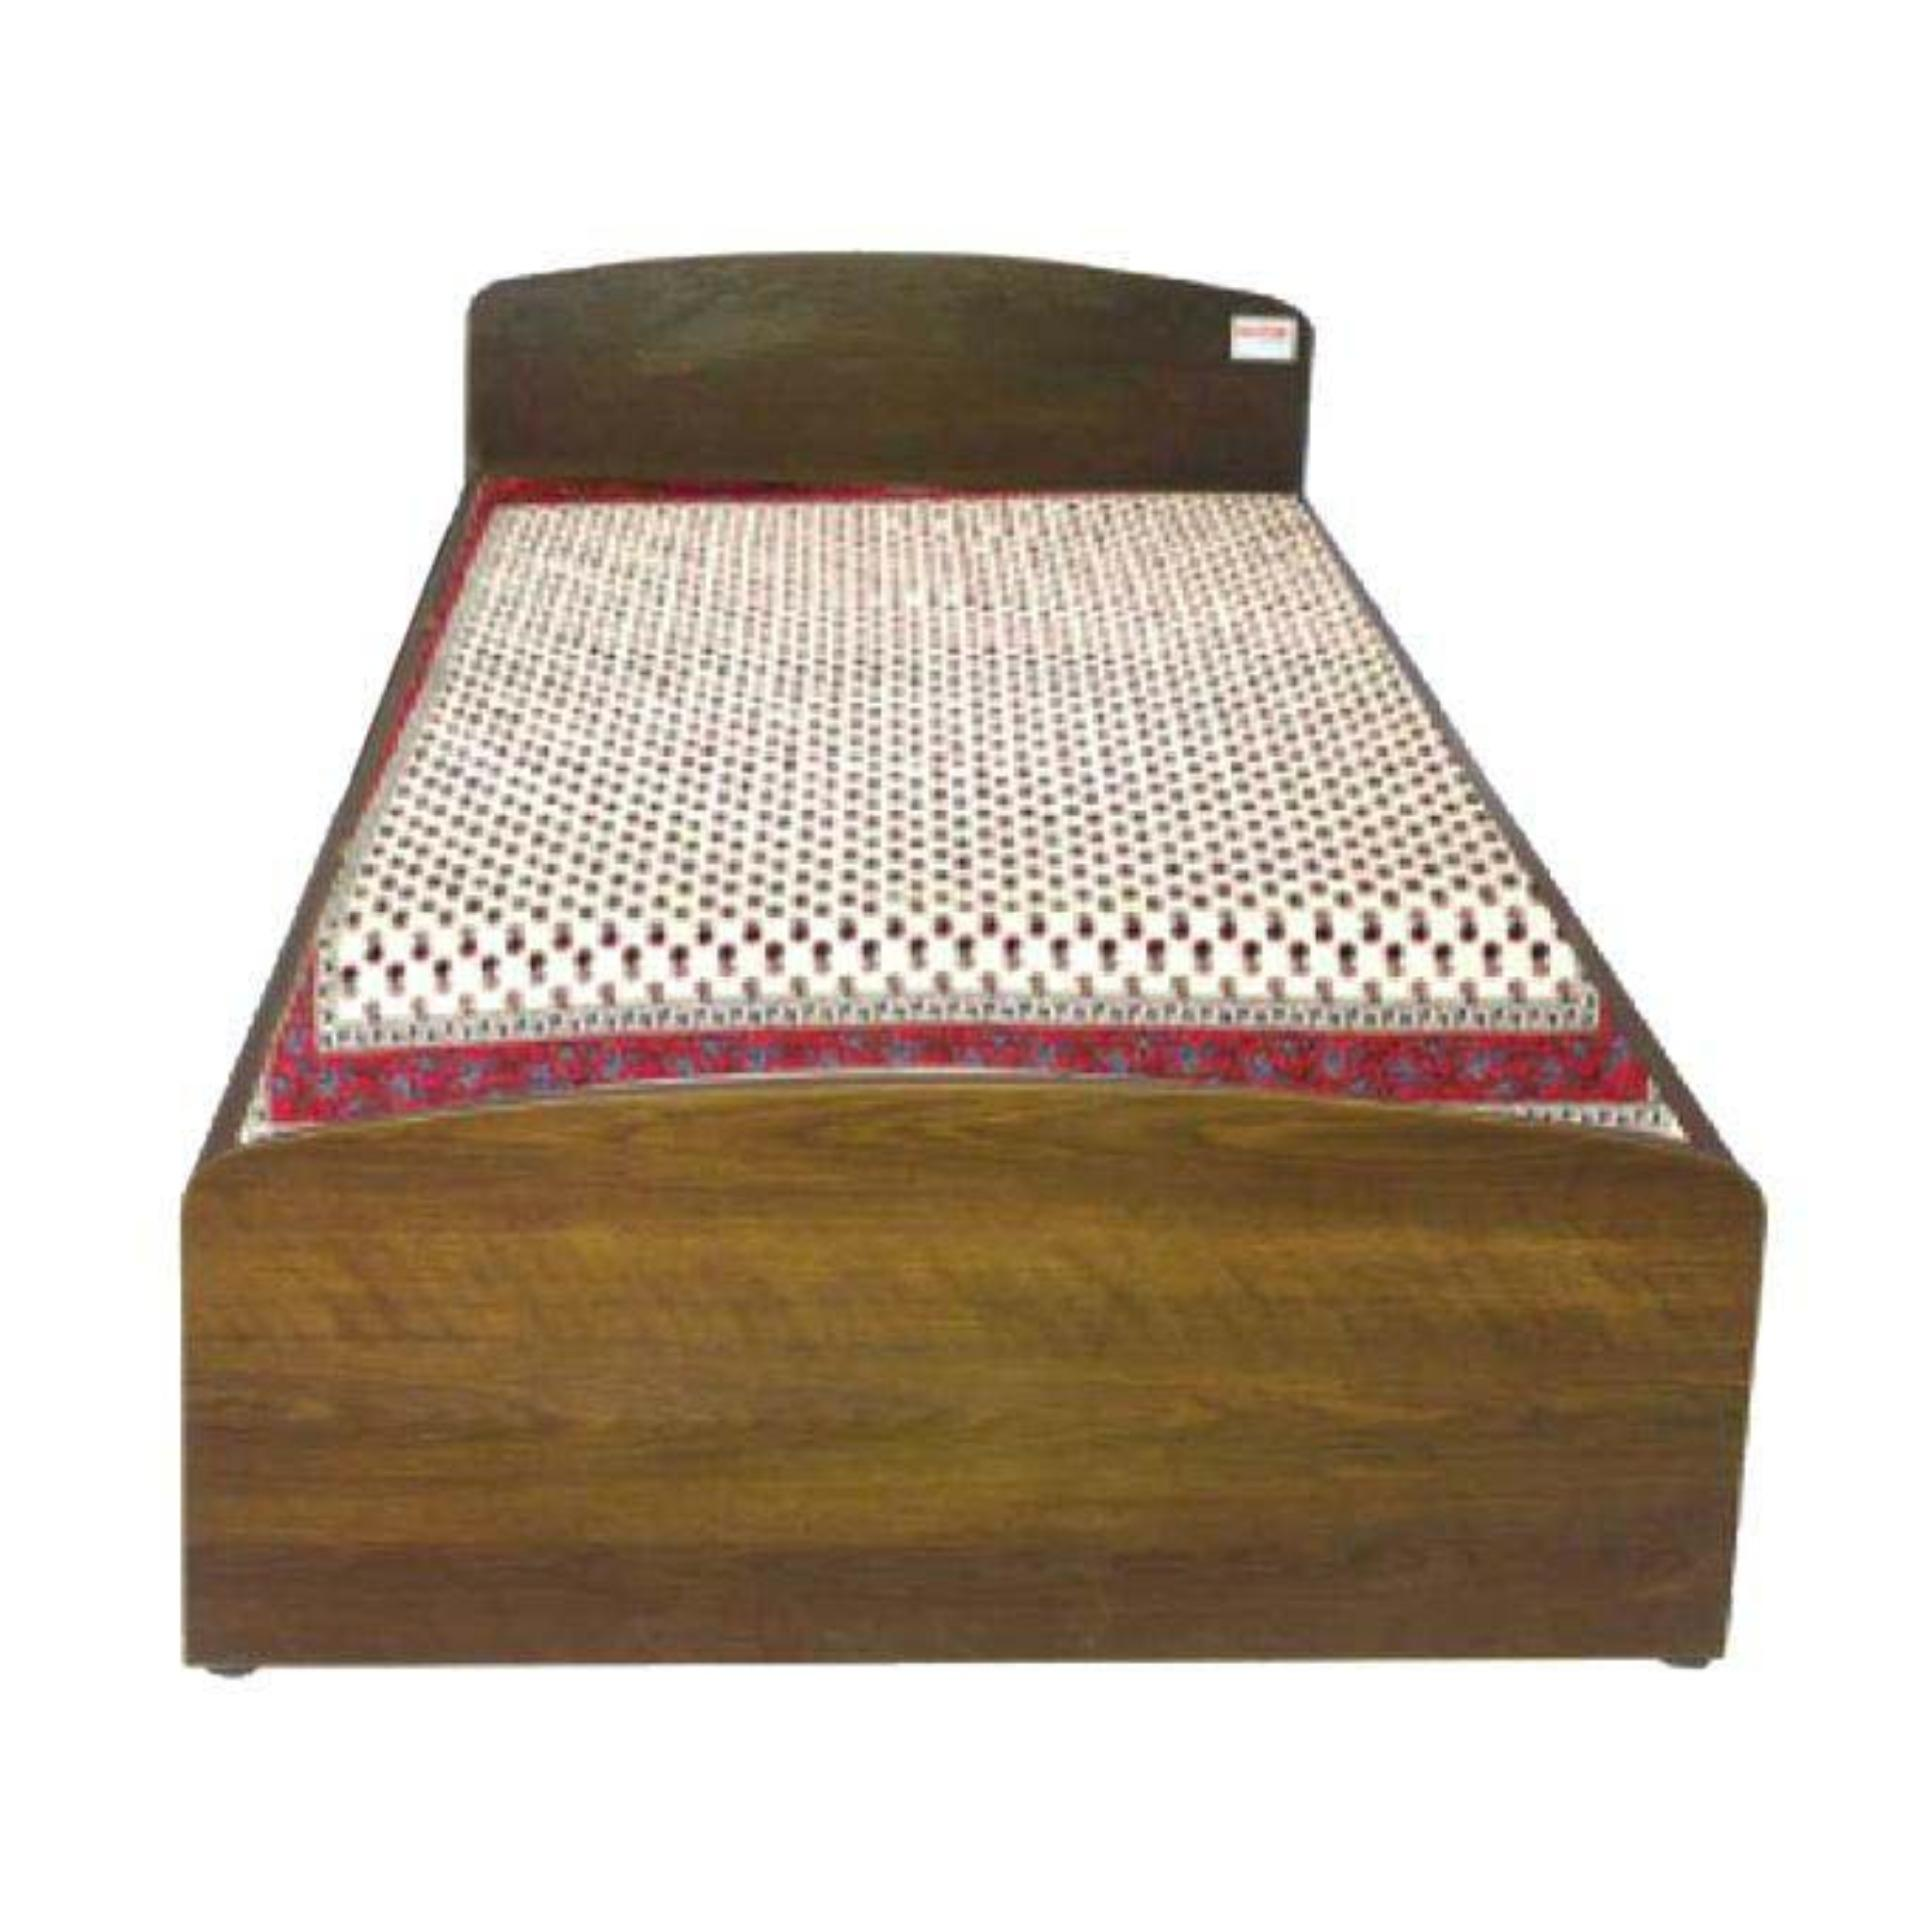 Hbsh 101 4 10 Laminated Board Single Bed Antique Buy Online At - Single Bed Price